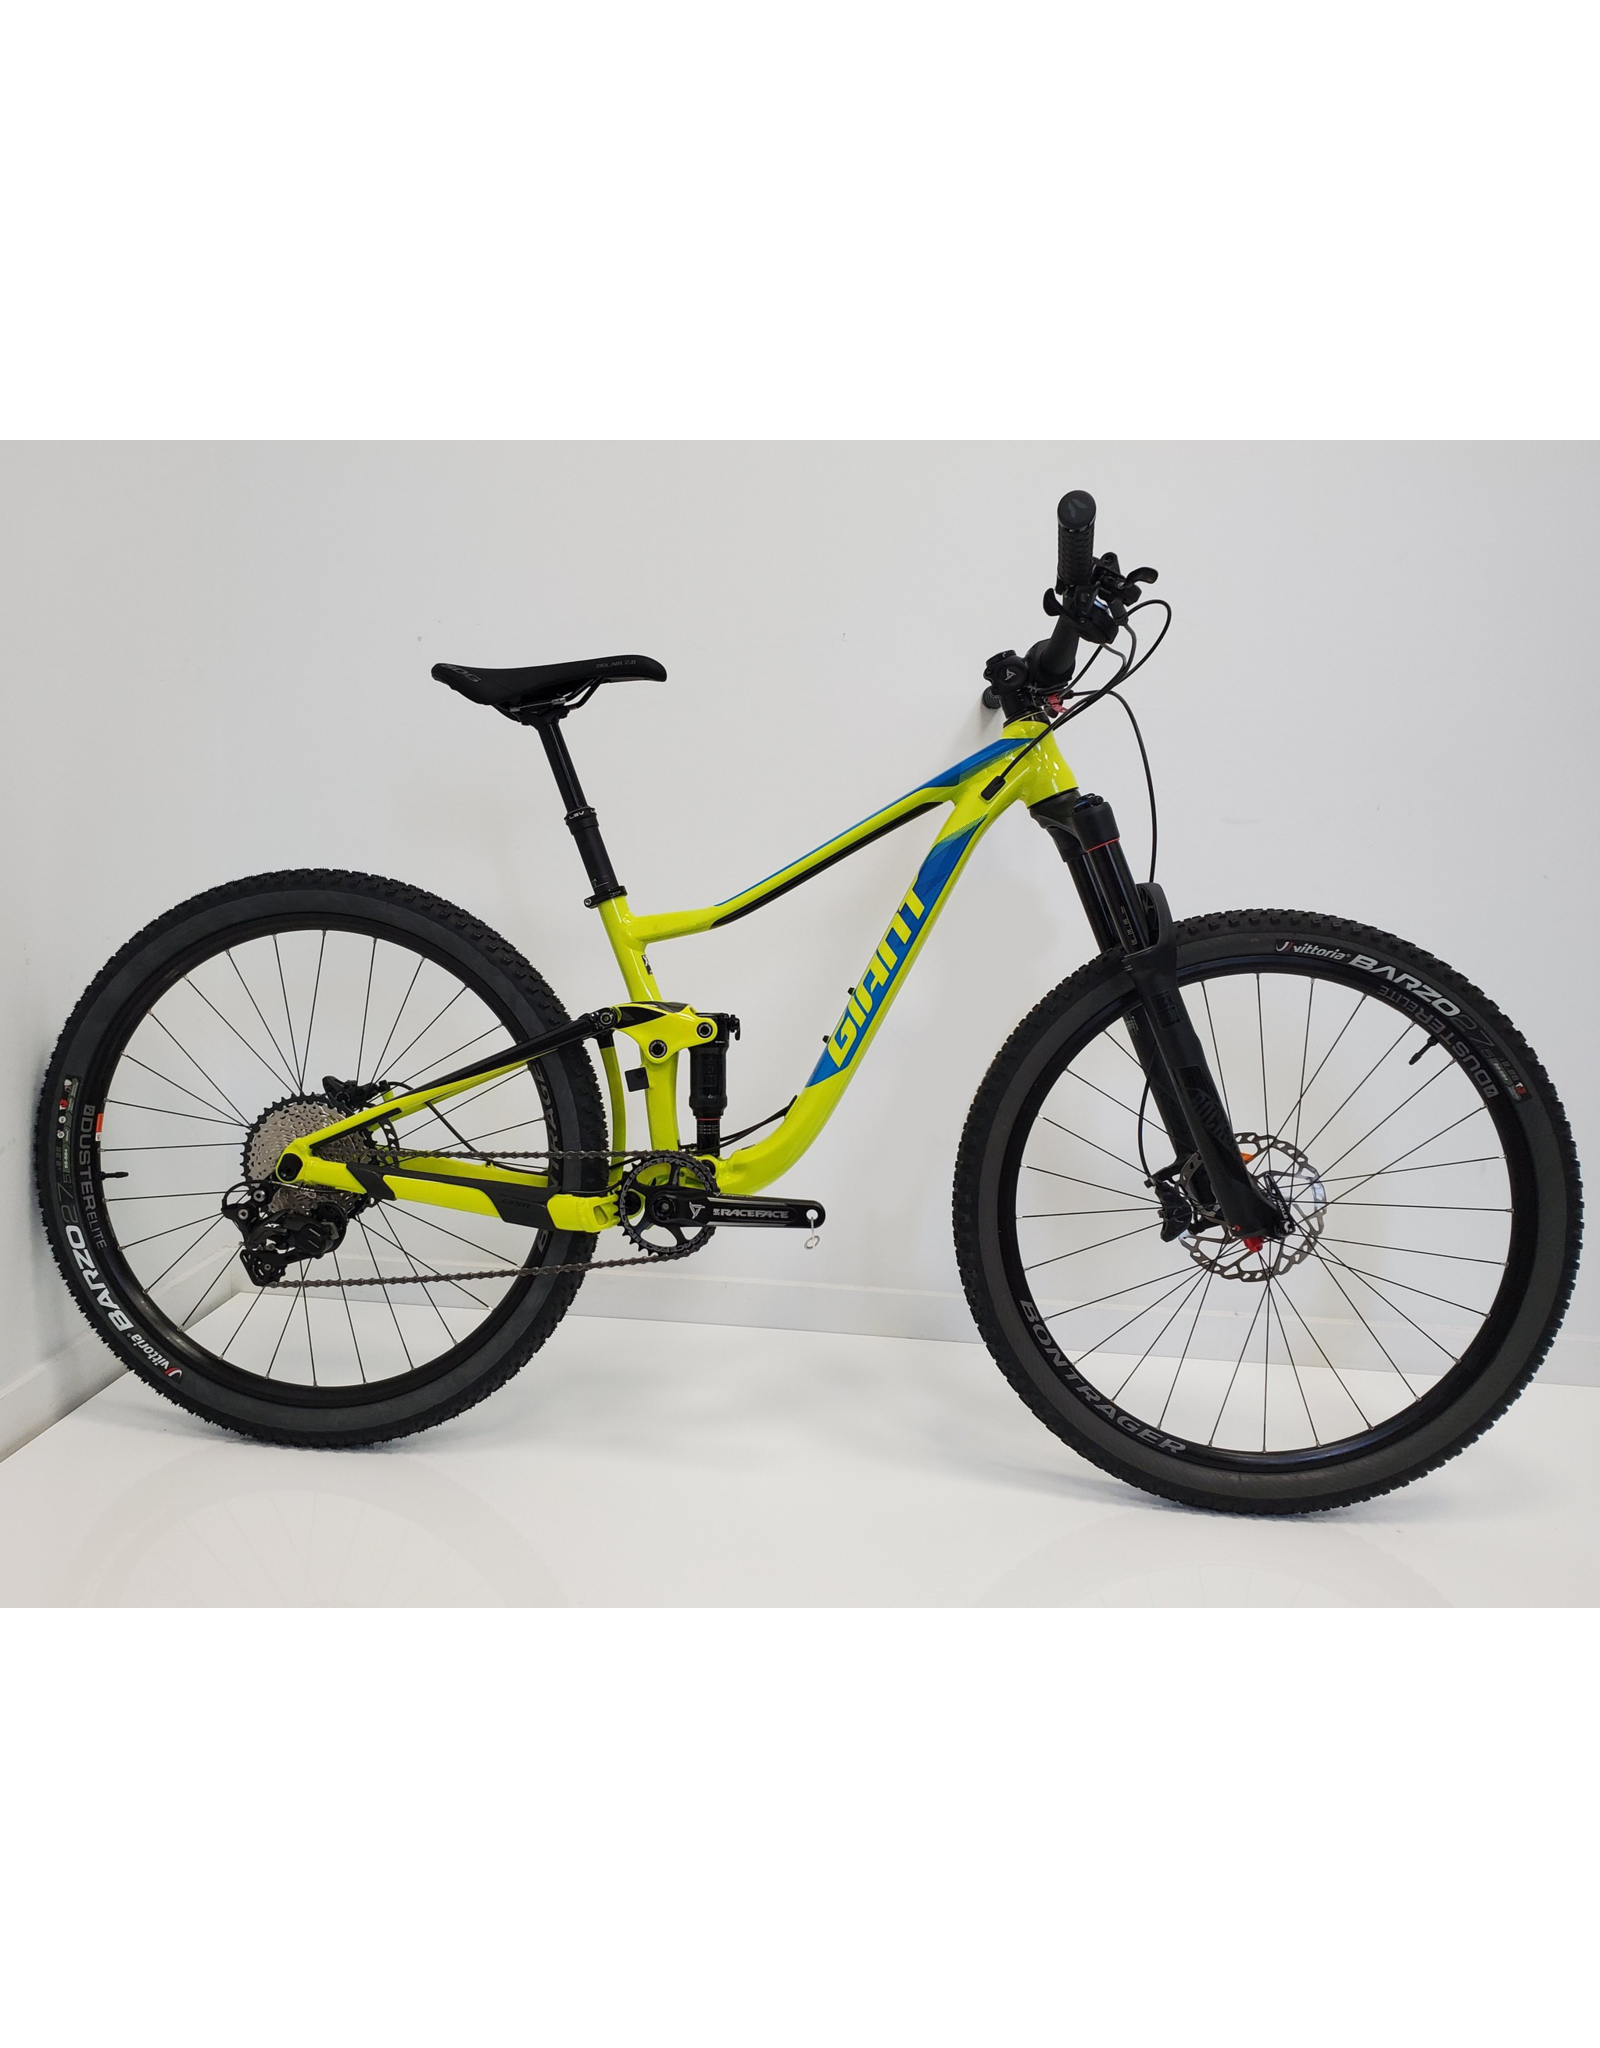 Giant 2017 Giant Anthem - Custom Build - Xsmall